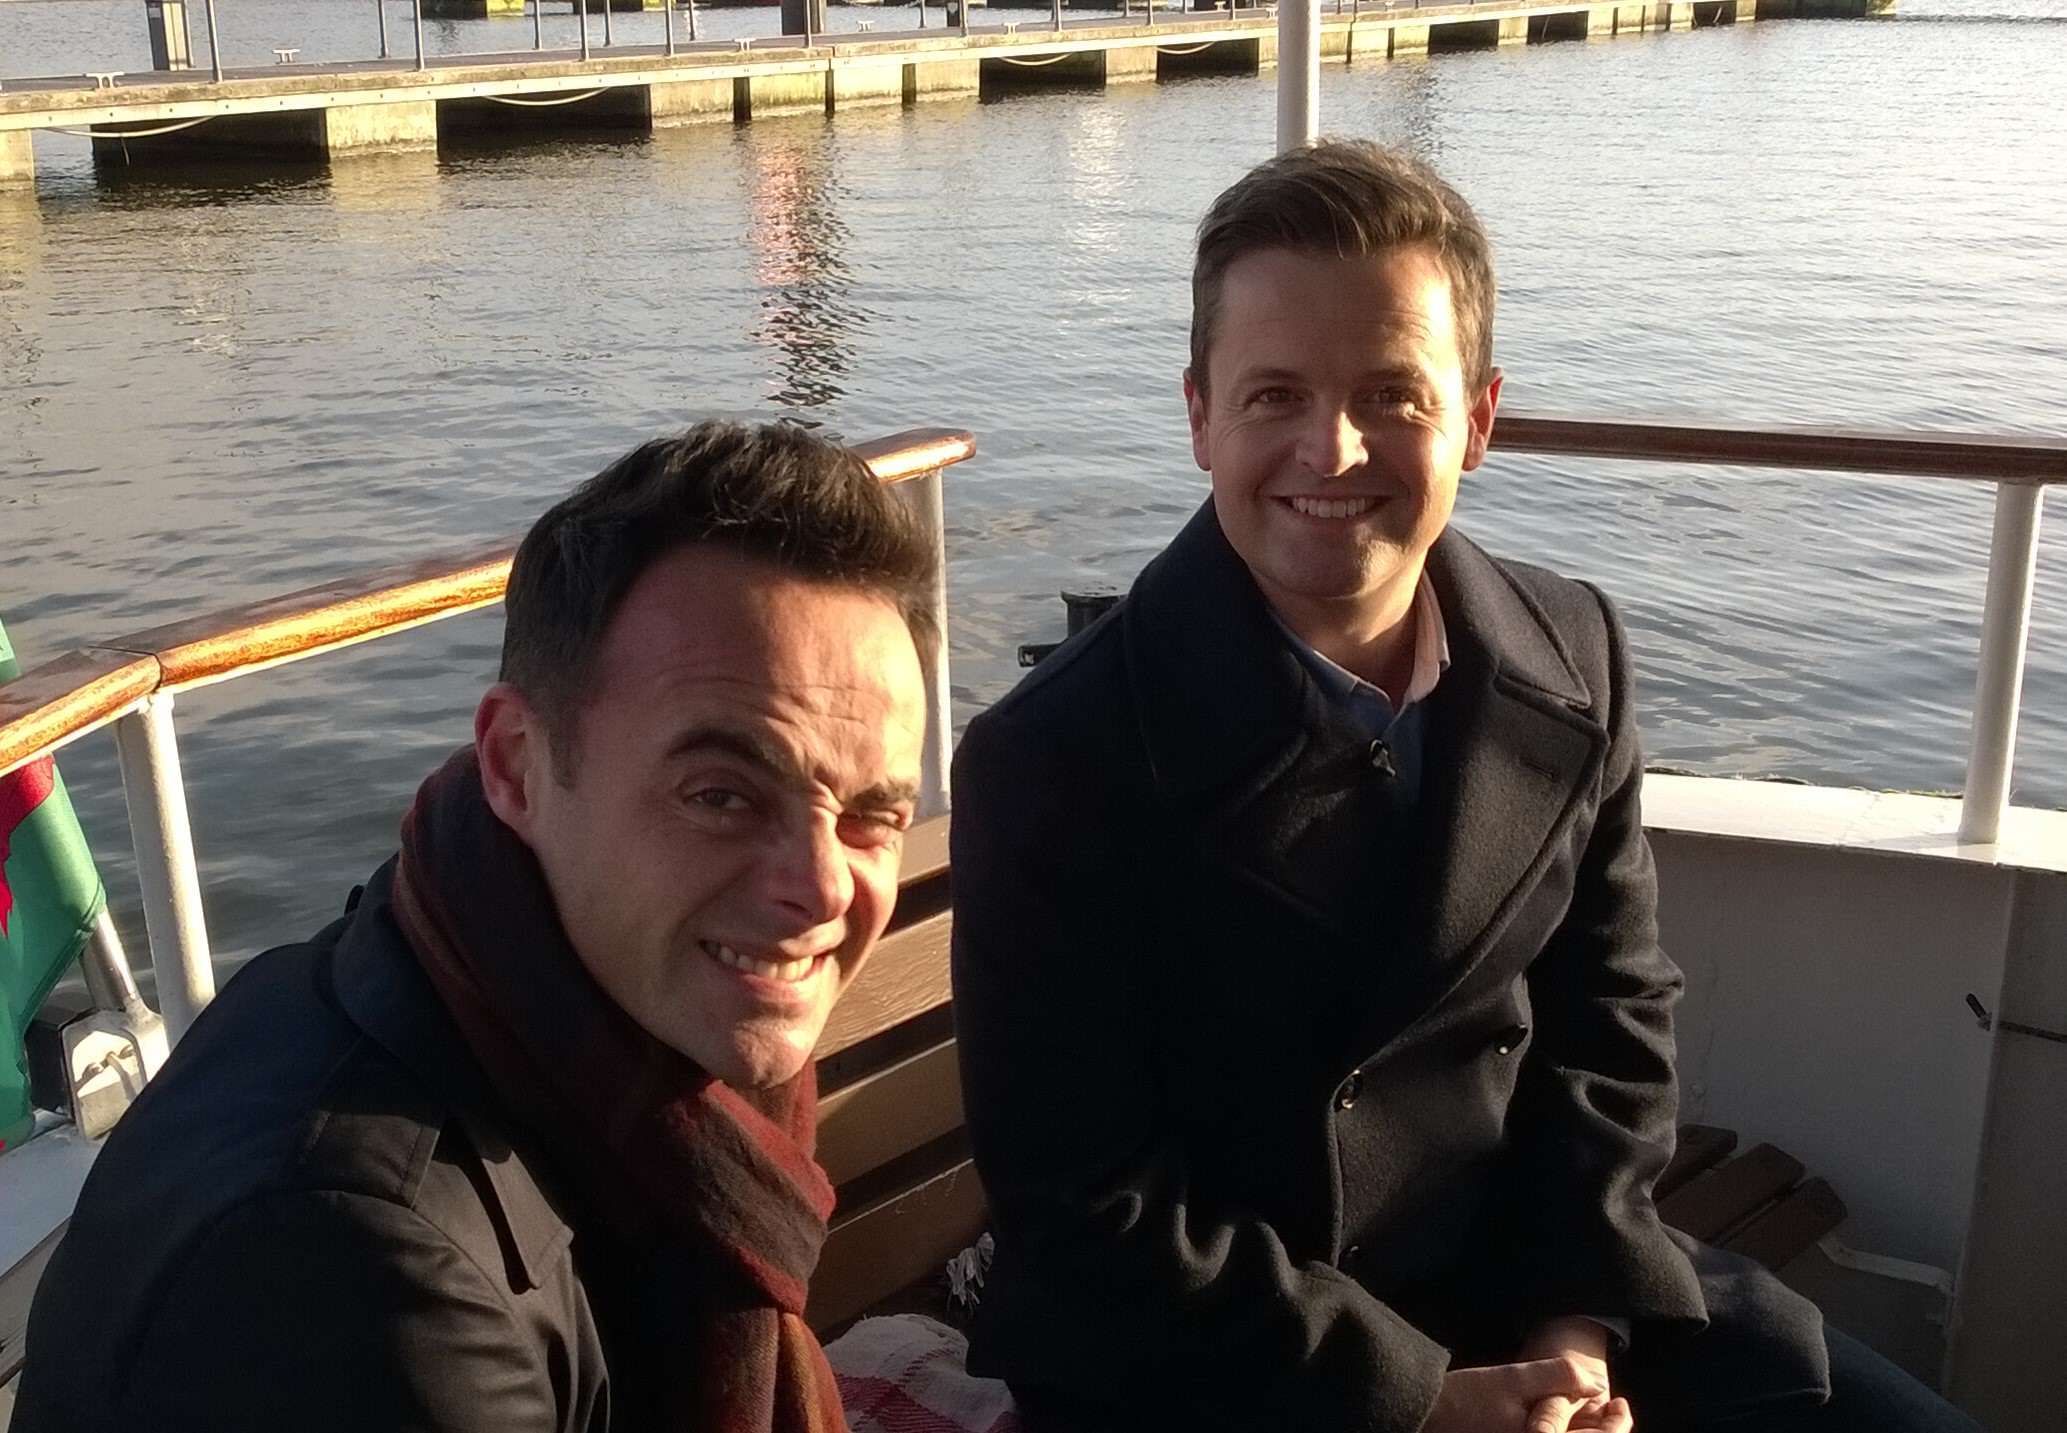 Ant_and_Dec_in_Cardiff_Bay